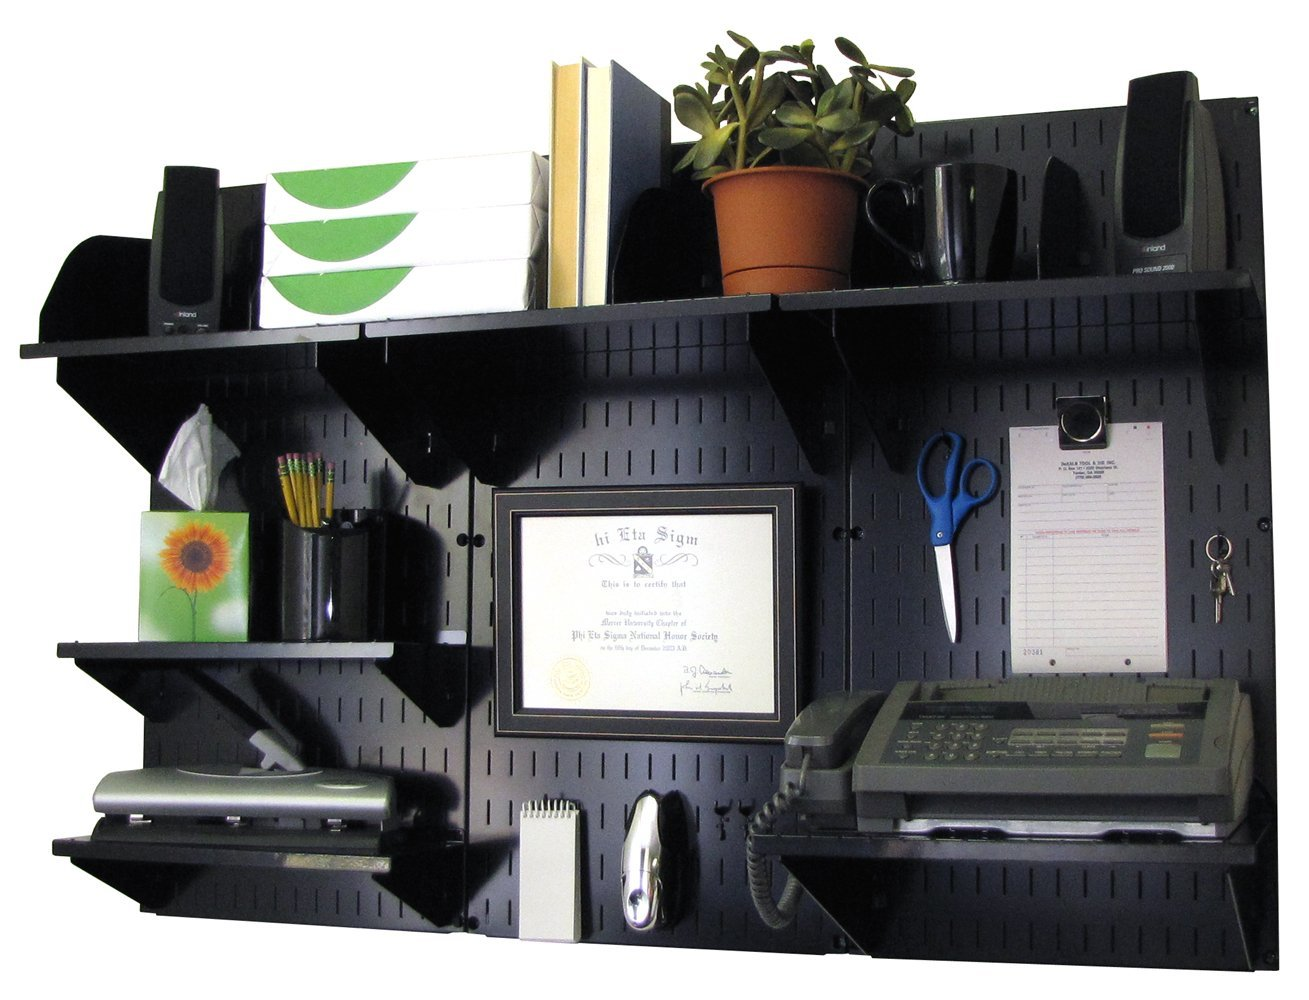 Wall Control Office Organizer Unit Wall Mounted Office Desk Storage and Organization Kit Black Wall Panels and Black Accessories by Wall Control